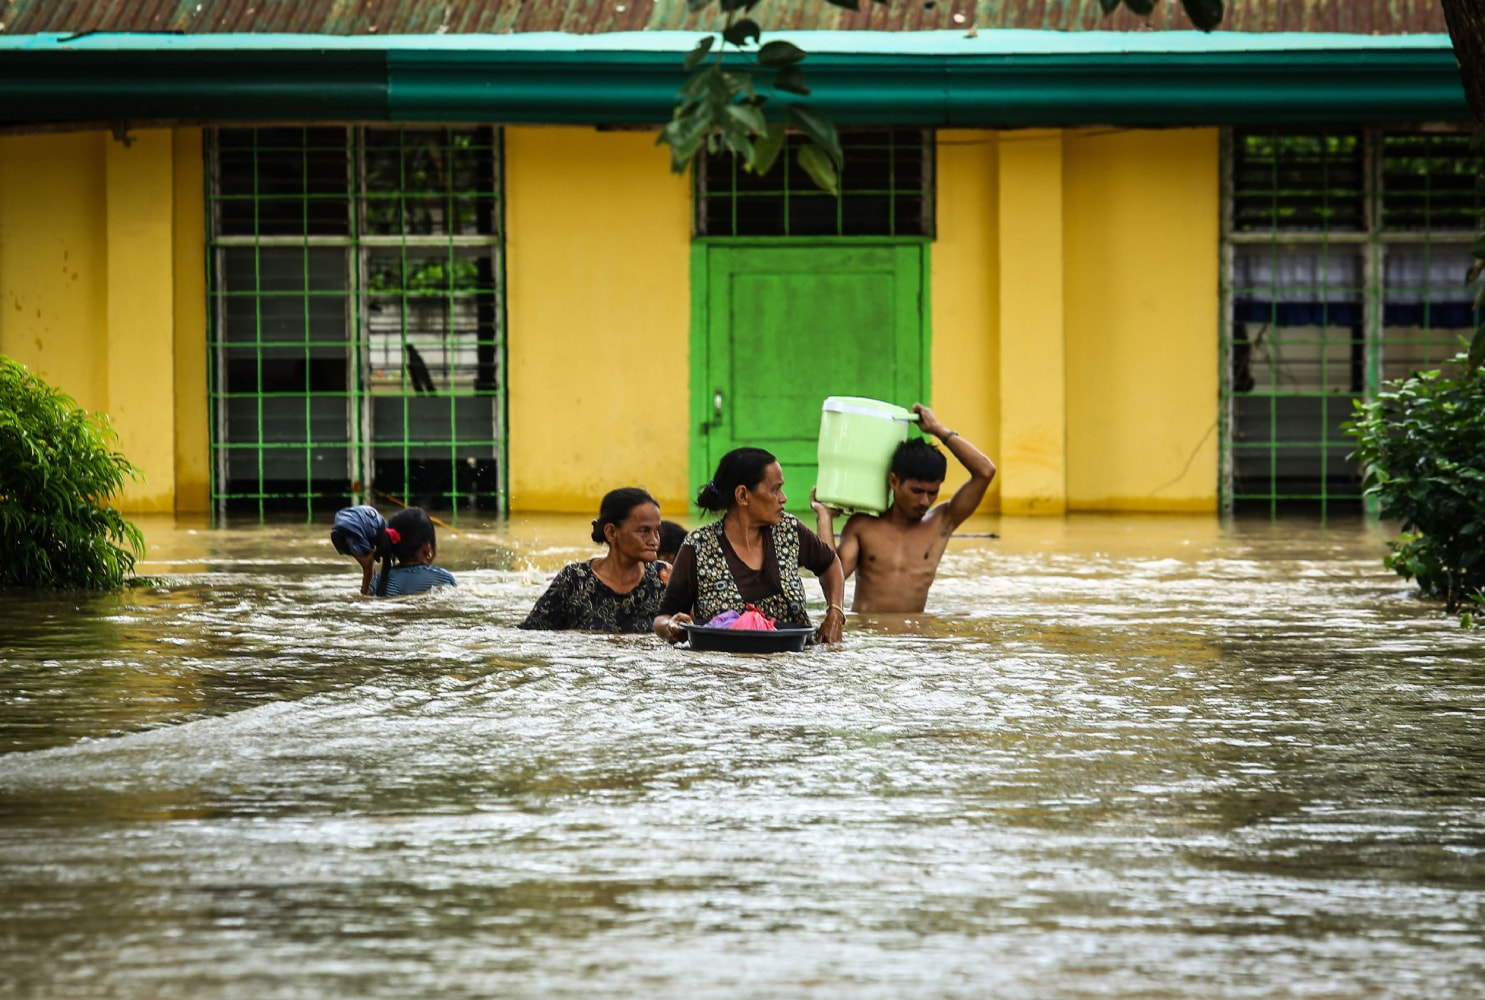 Thousands spend holiday in shelters after Philippine storm